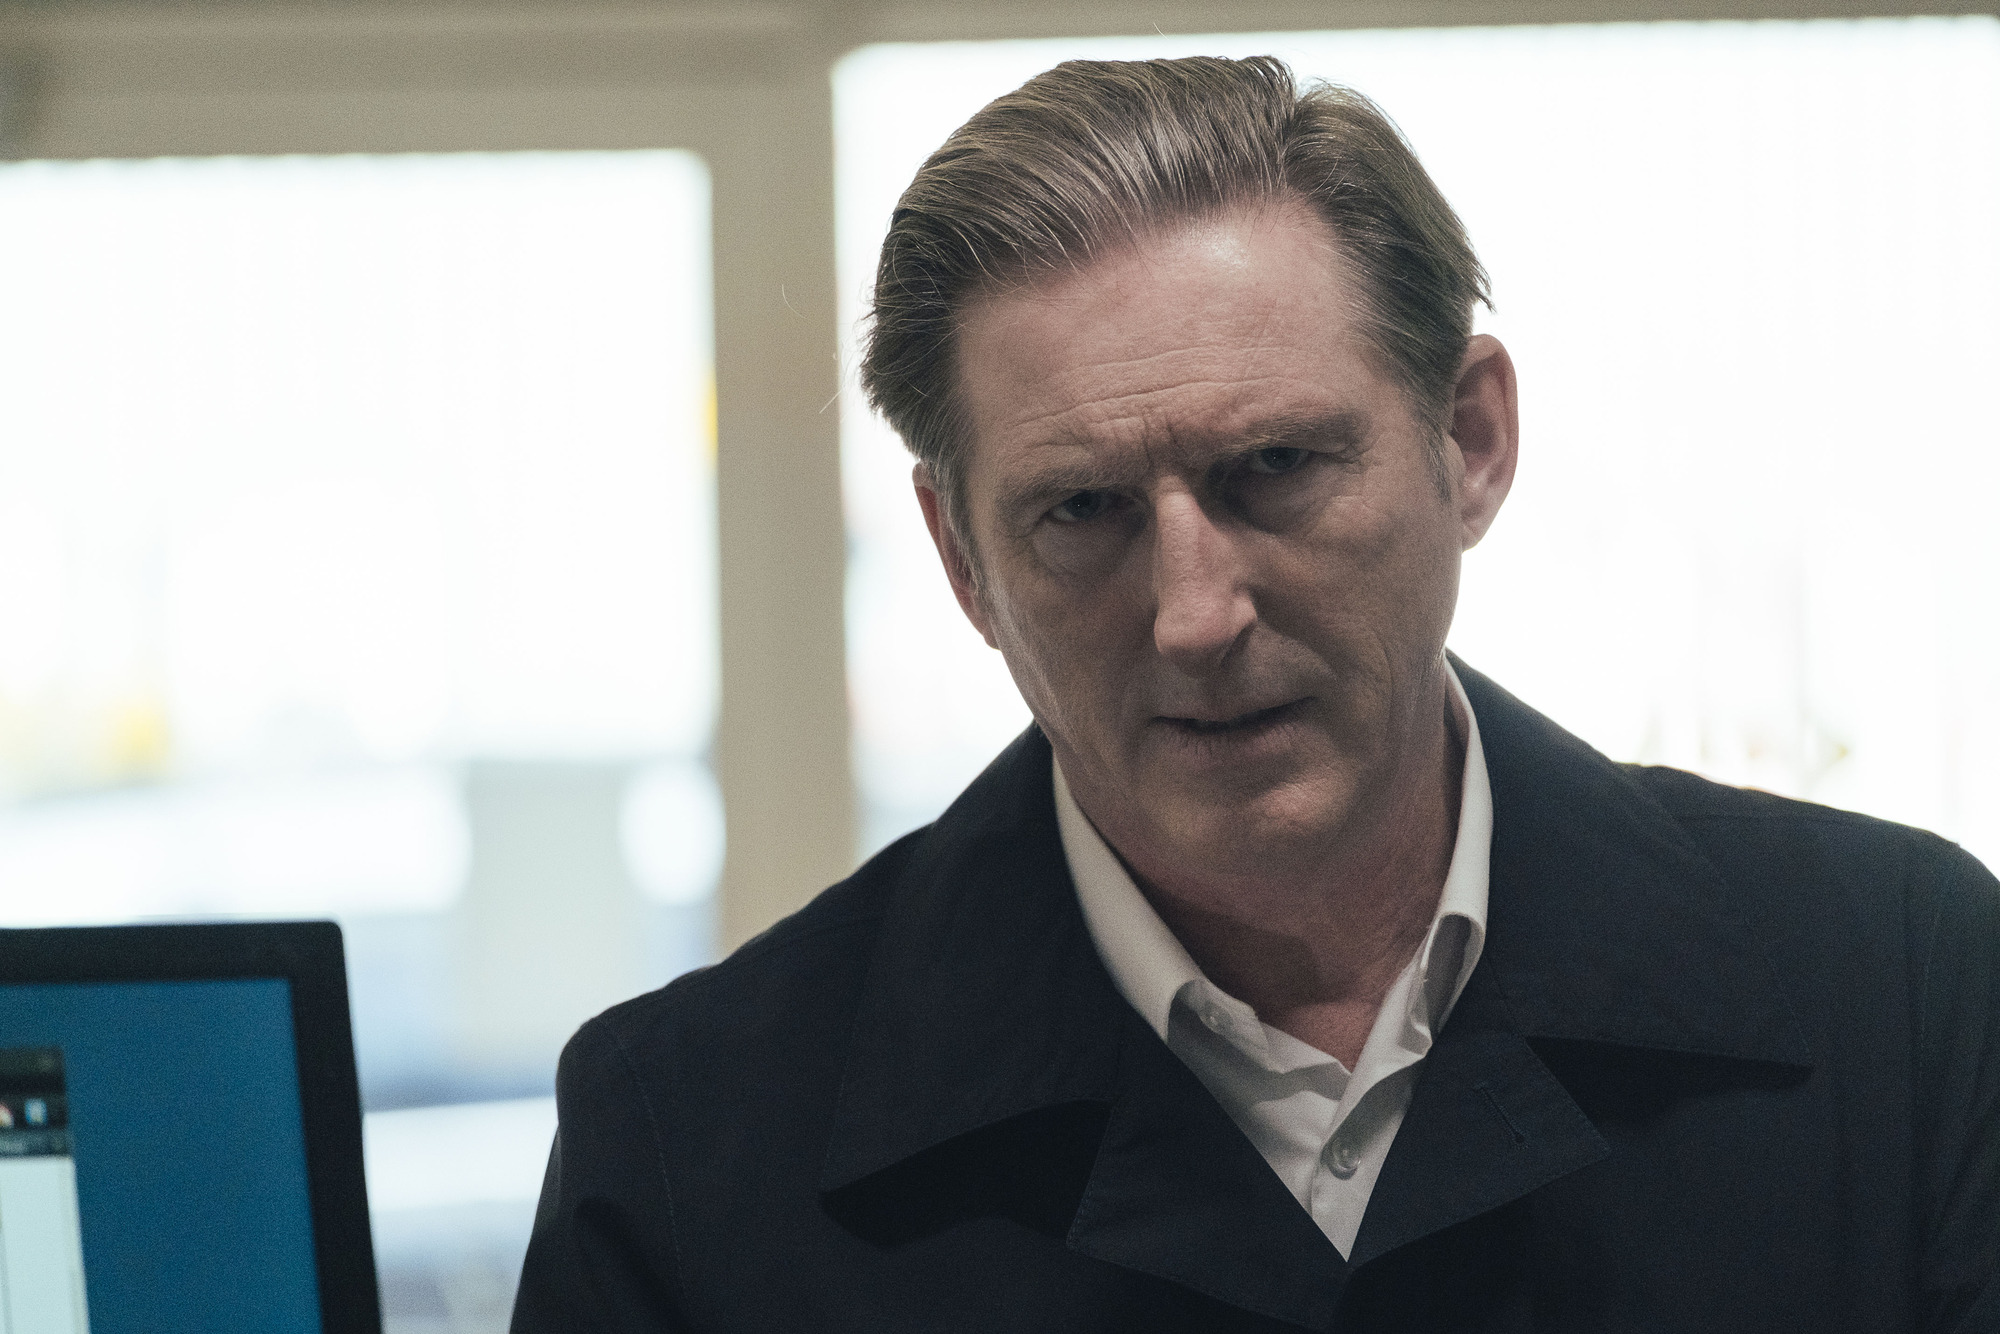 Did Line of Duty reveal crucial details about Ted Hastings links to John Corbett in series 1?